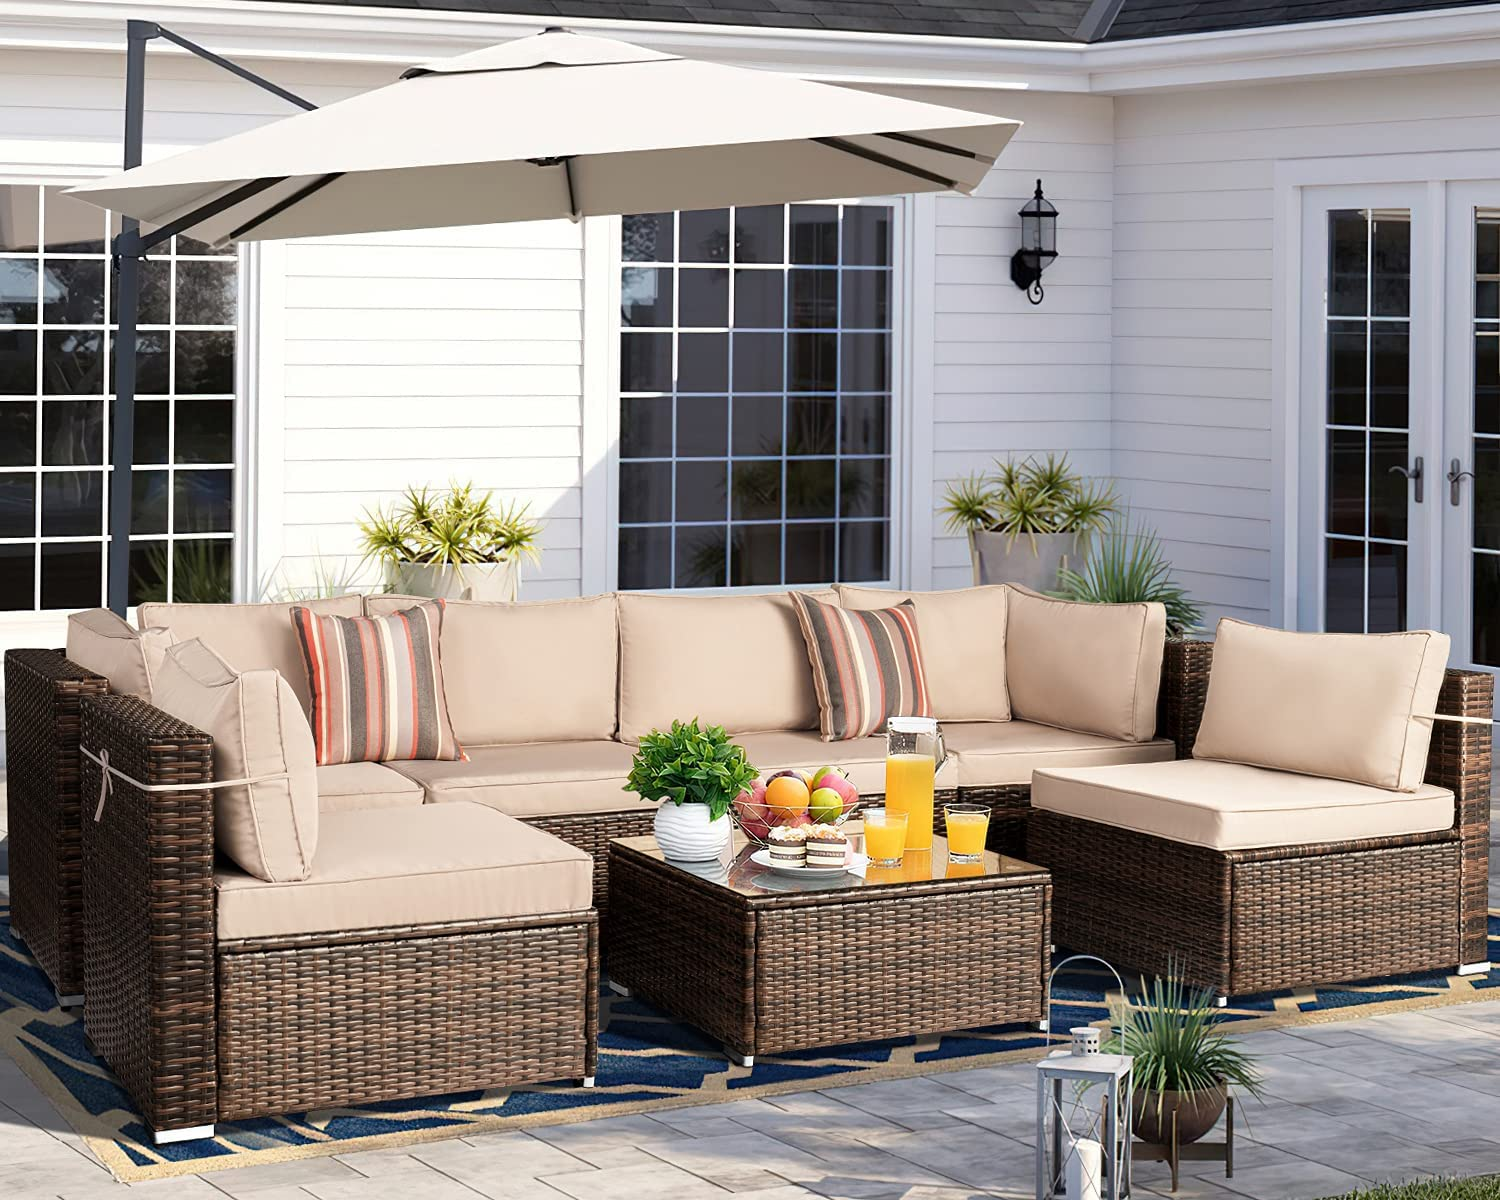 outlet price Aoxun 7 Piece Patio Furniture Sets S Rattan Sectional Outdoor PE